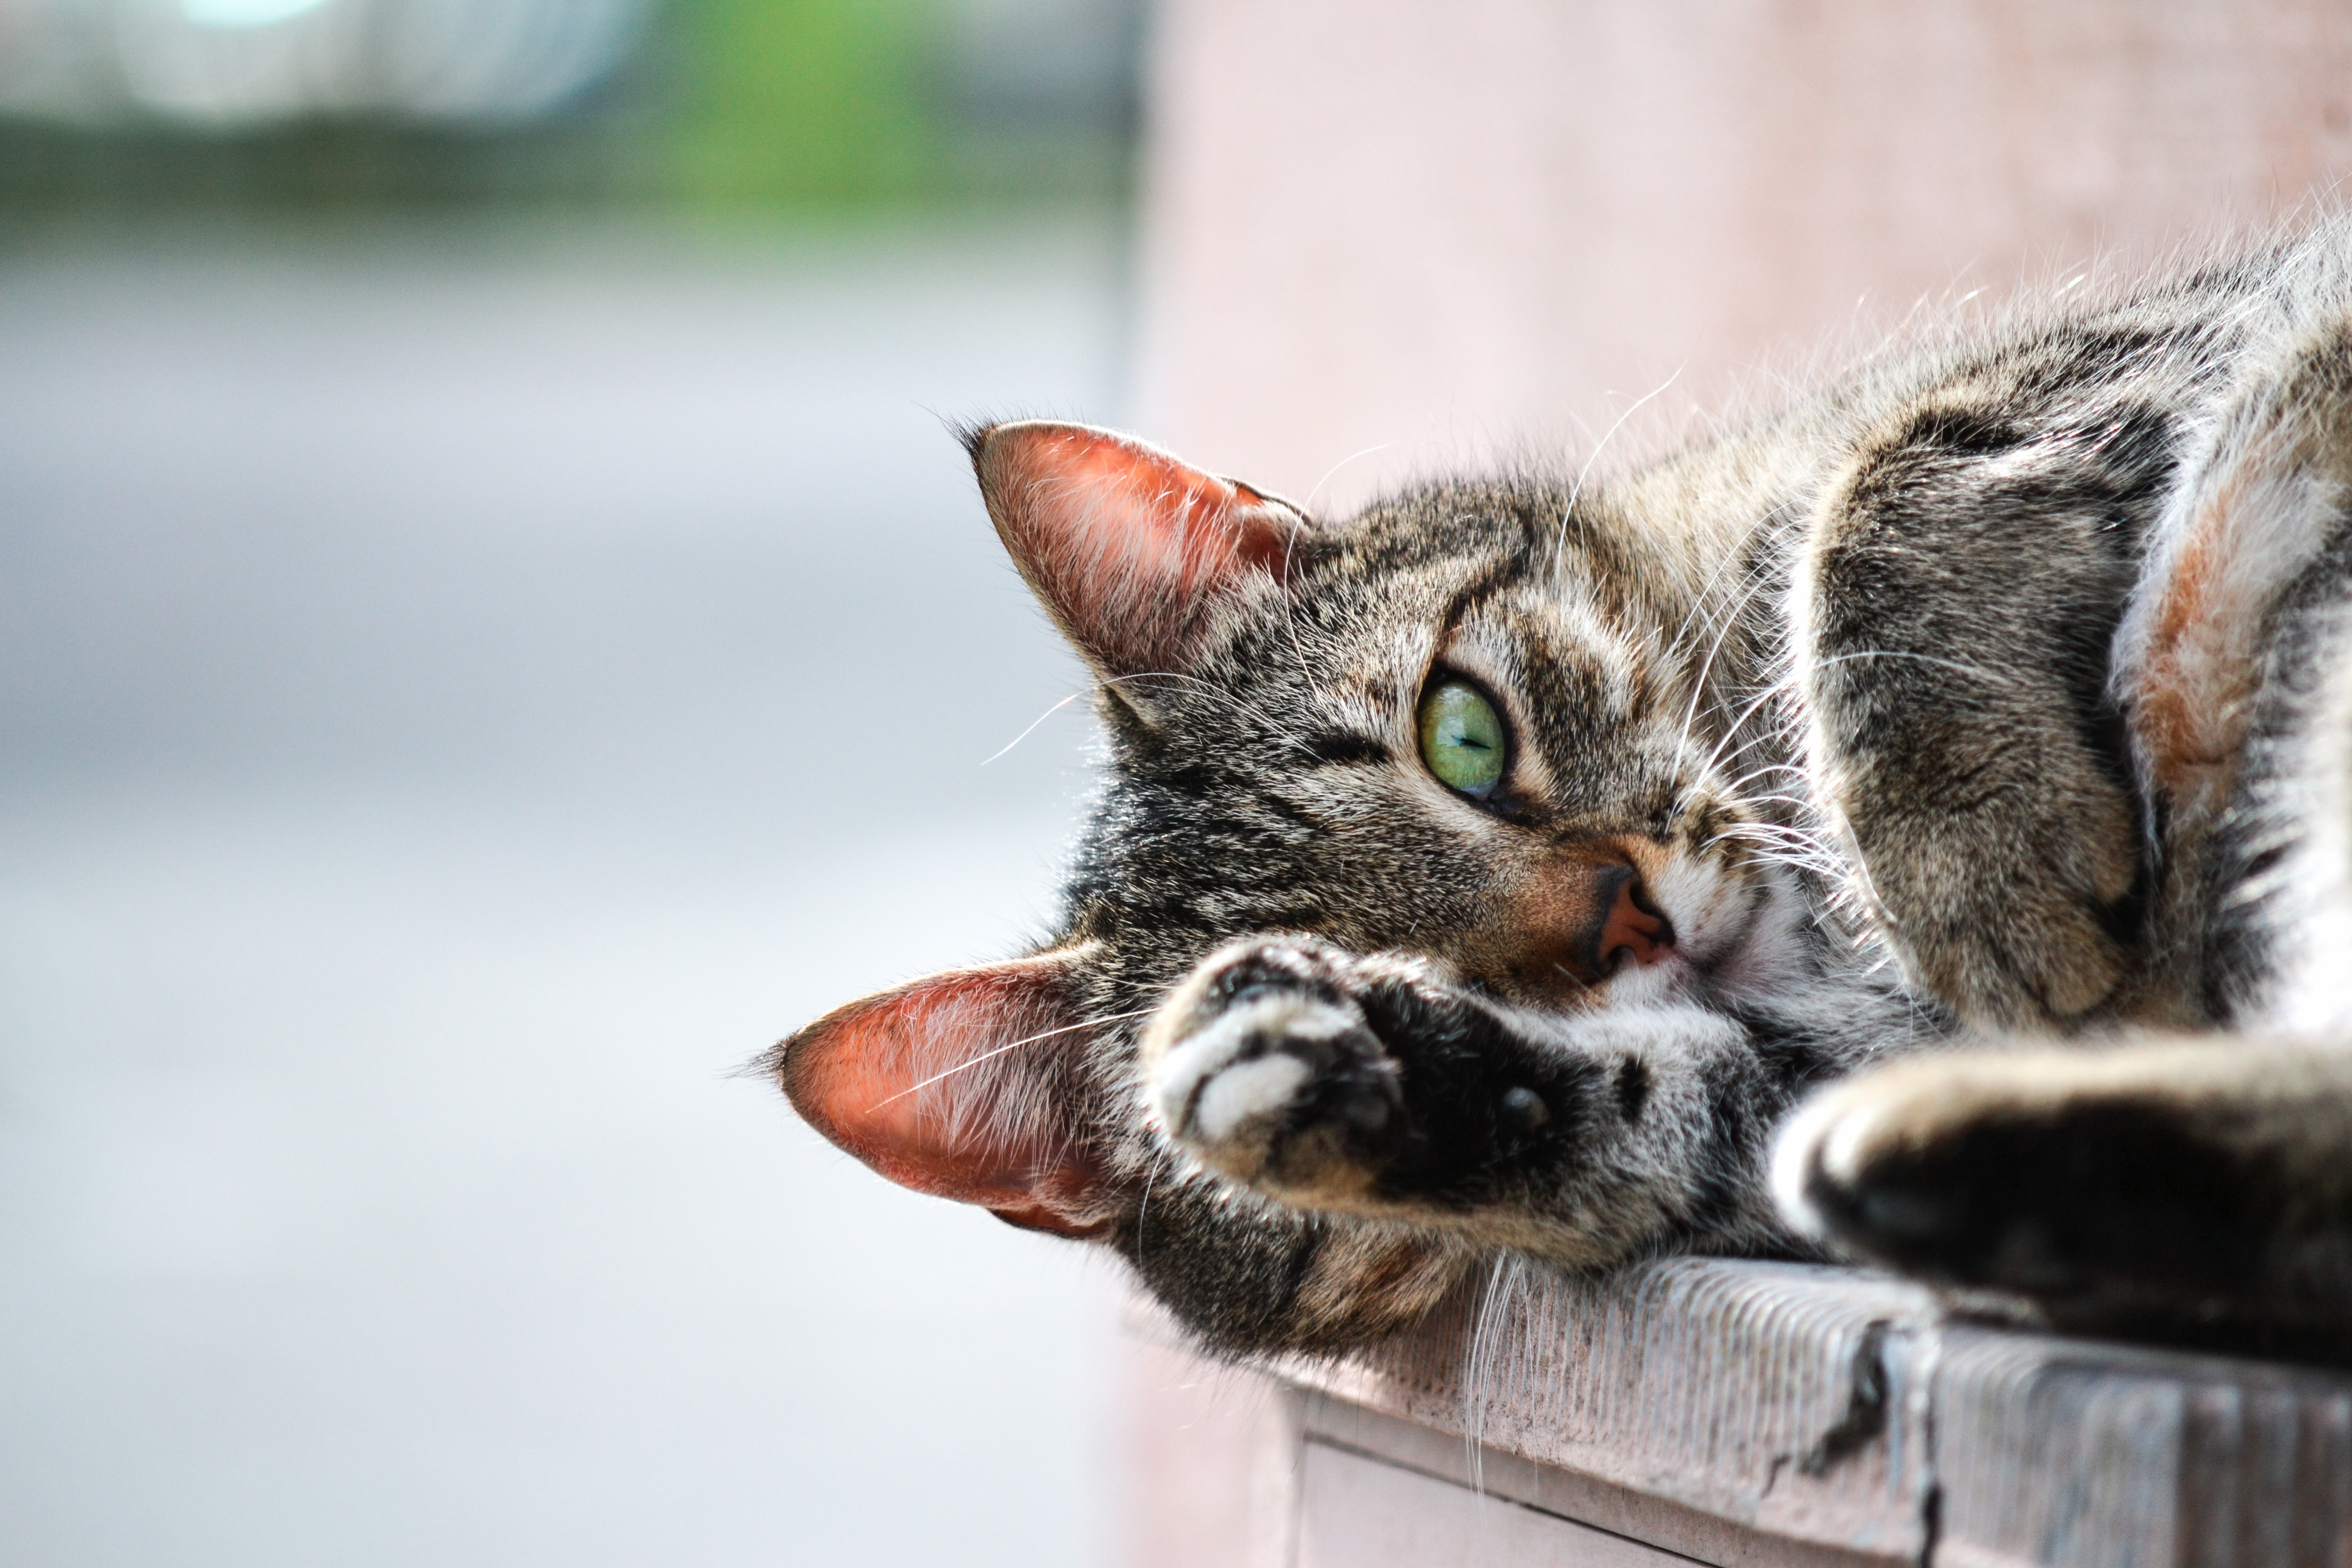 109461 download wallpaper Animals, Cat, Muzzle, Paw, Lies screensavers and pictures for free